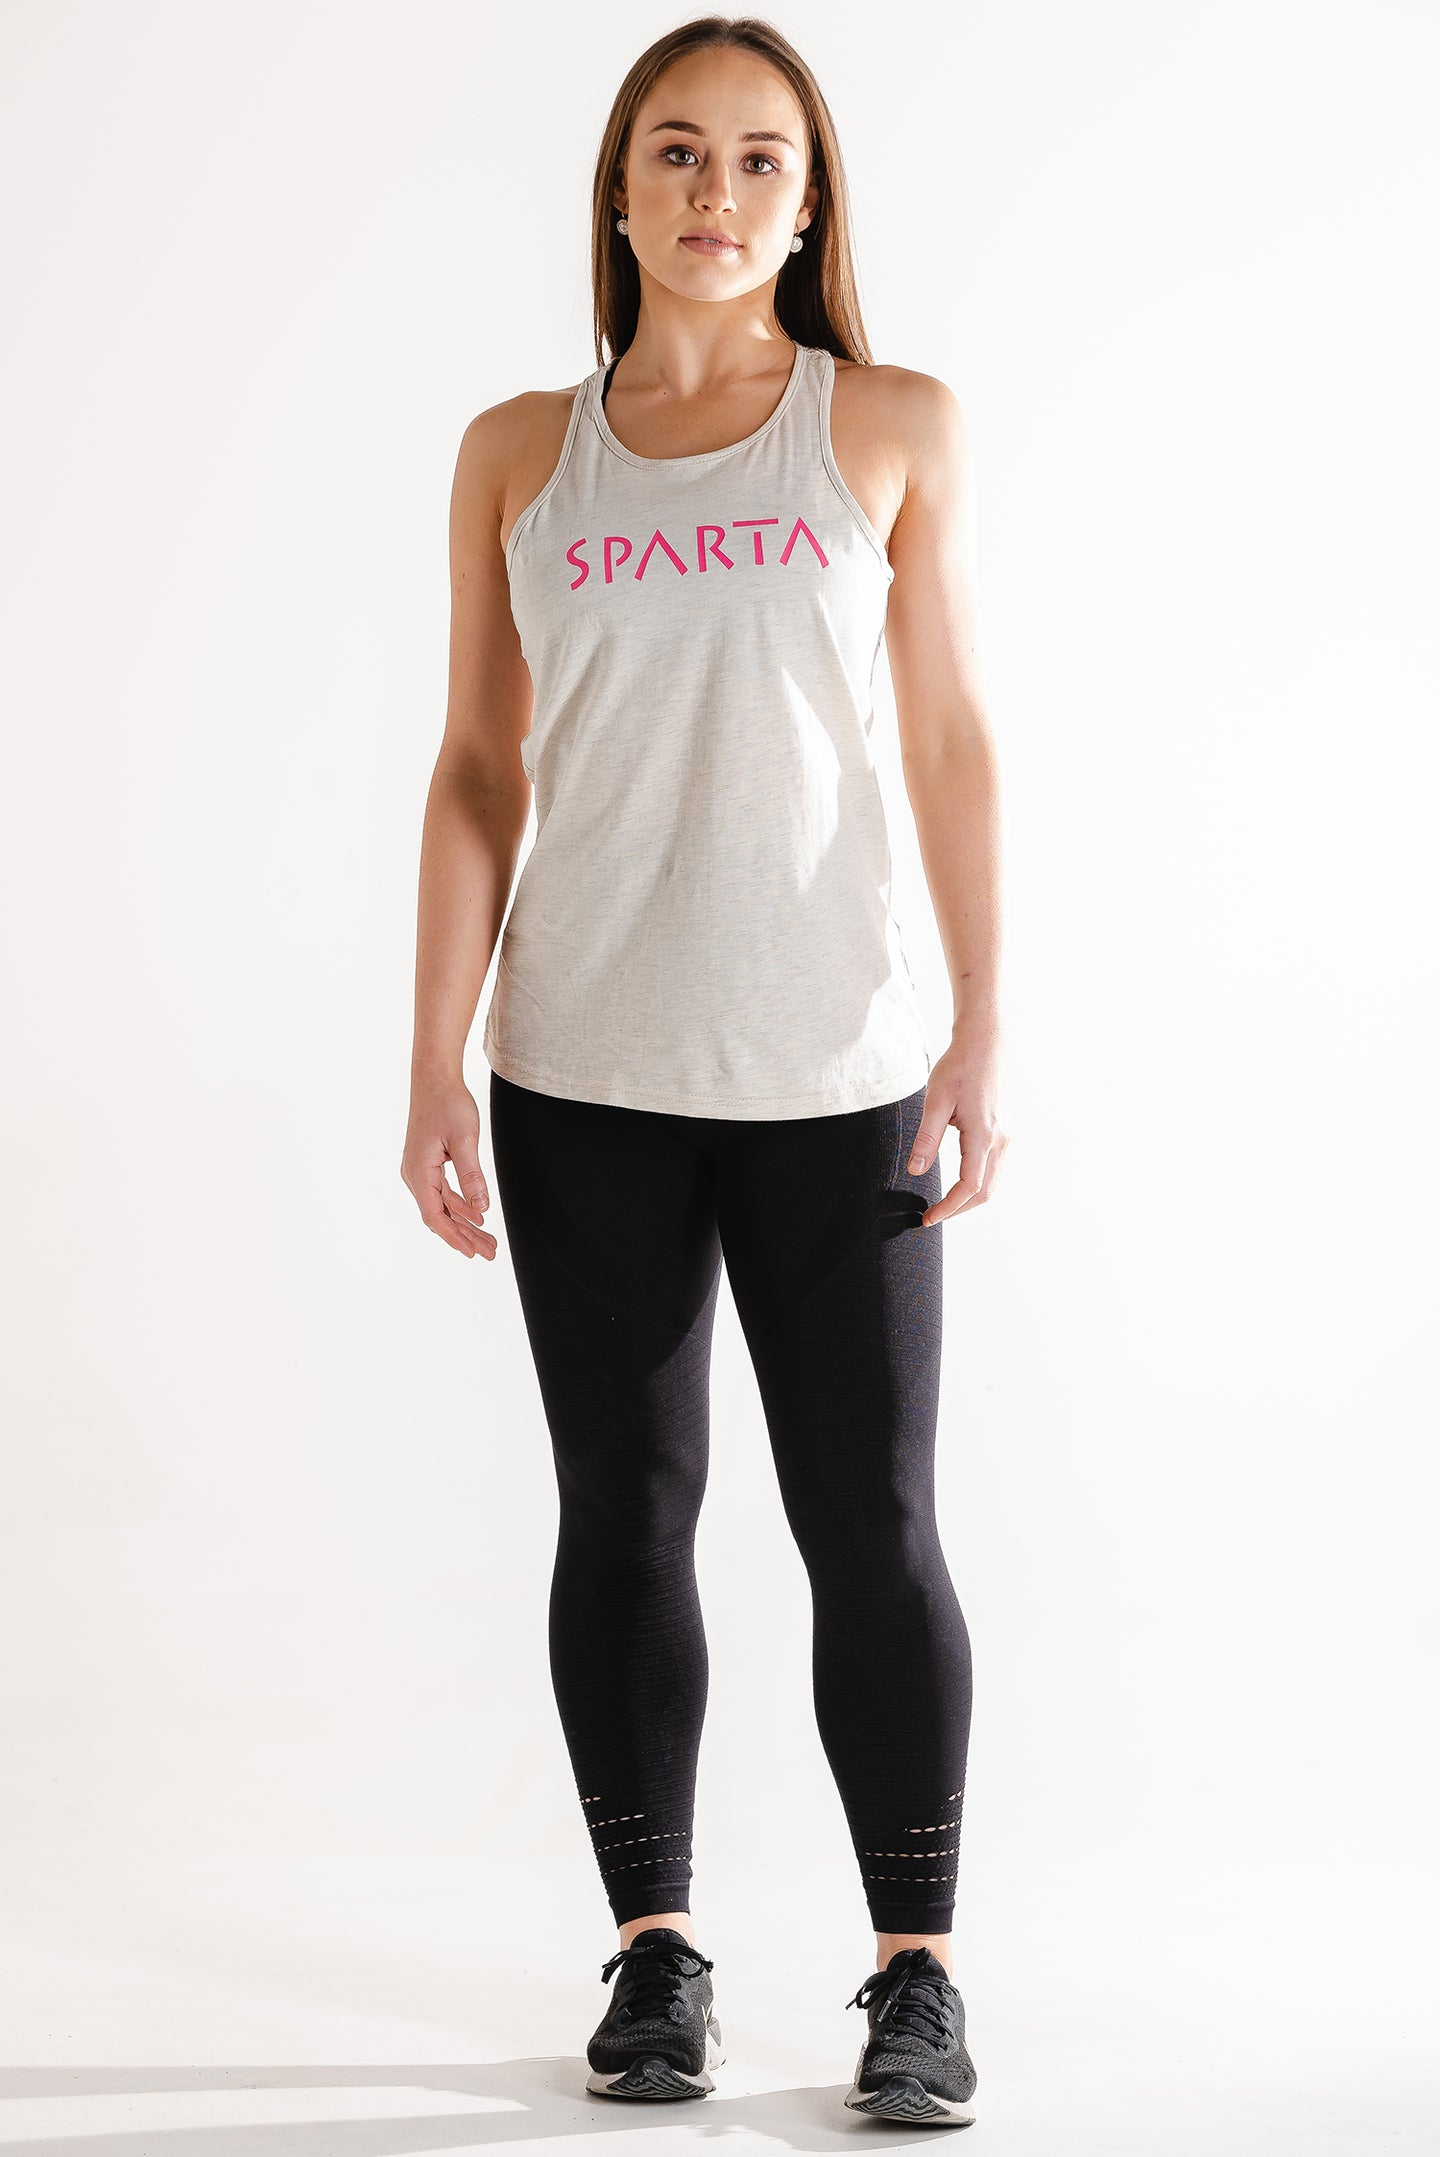 Sparta Training Tank - Beige - Sparta Gym Wear